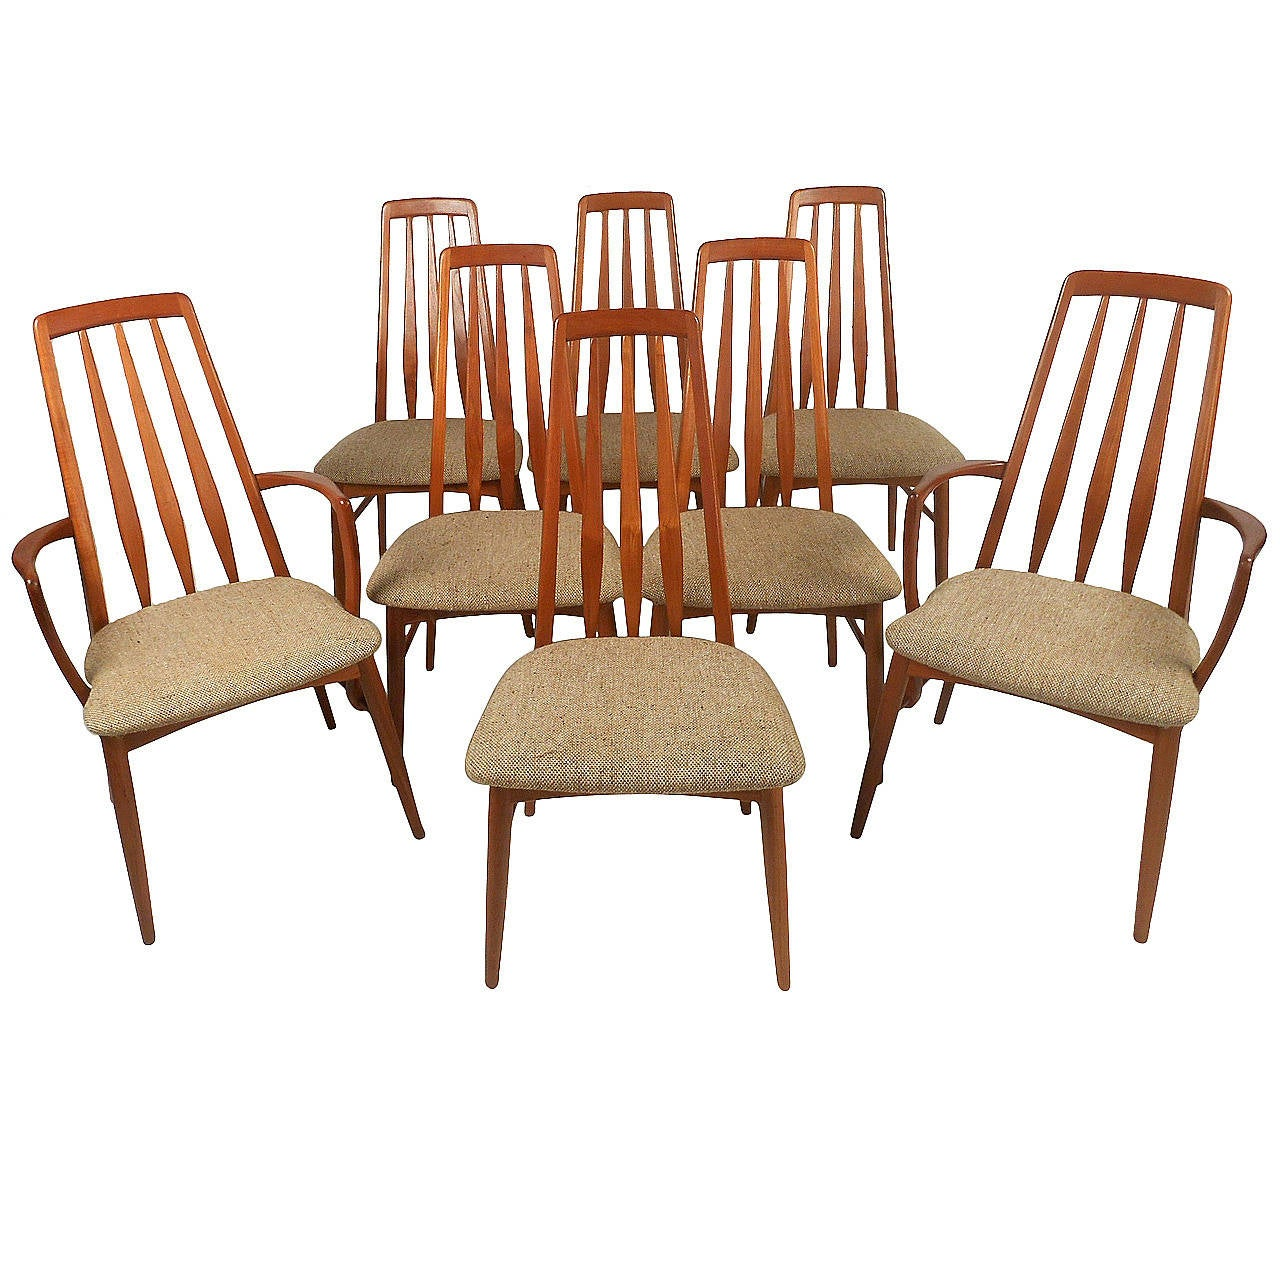 "Mid-Century Modern Danish Teak ""Eva"" Dining Chairs For"